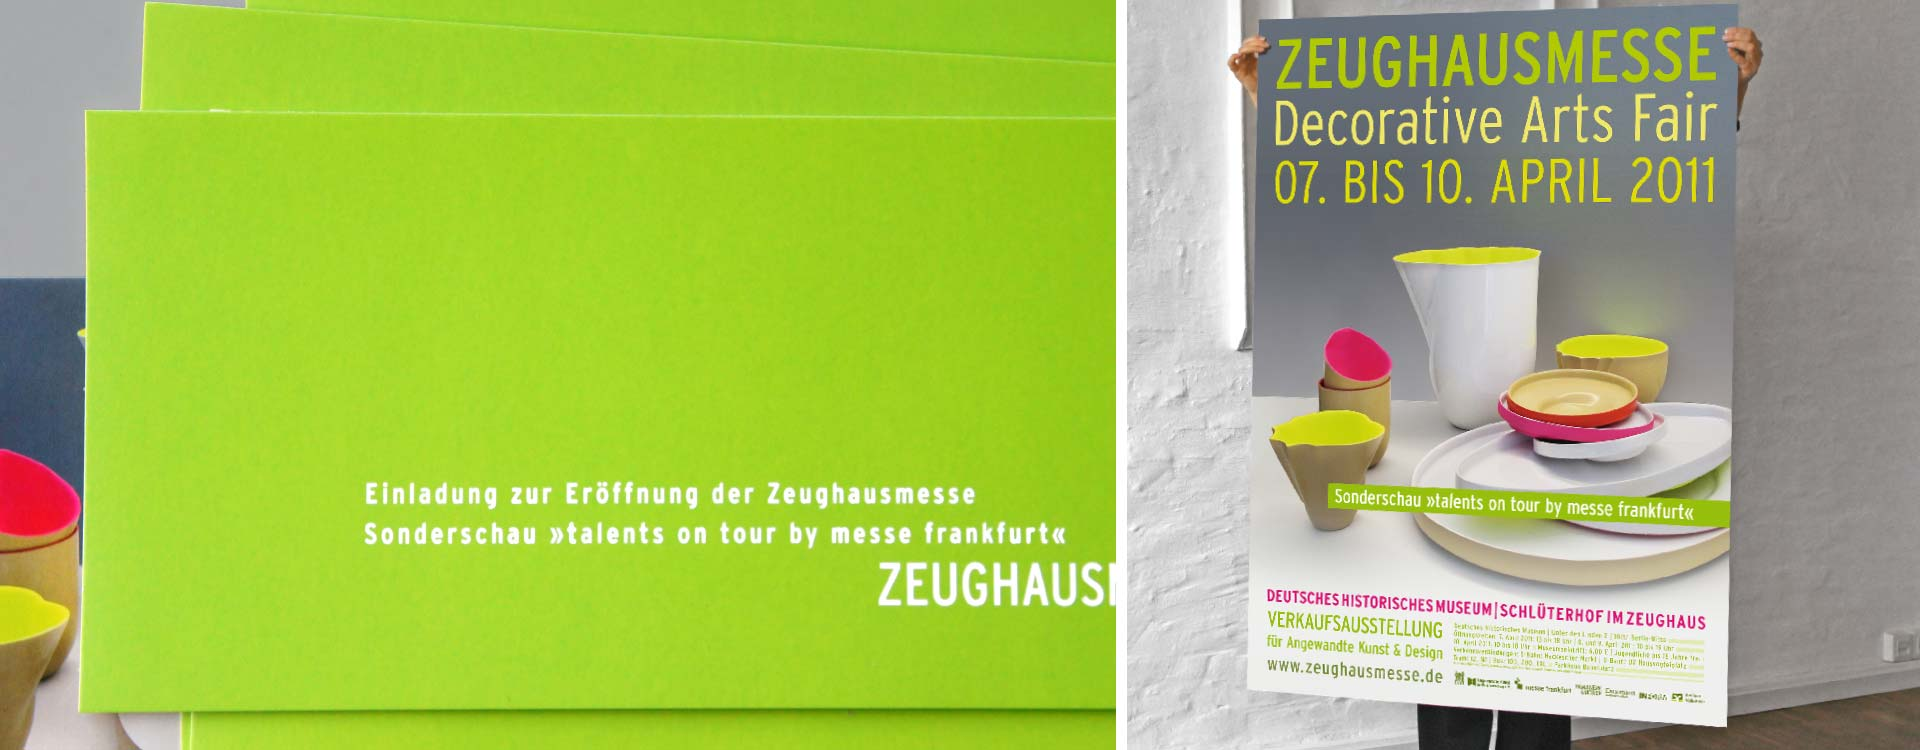 Poster for Zeughausmesse; Design: Kattrin Richter | Graphic Design Studio